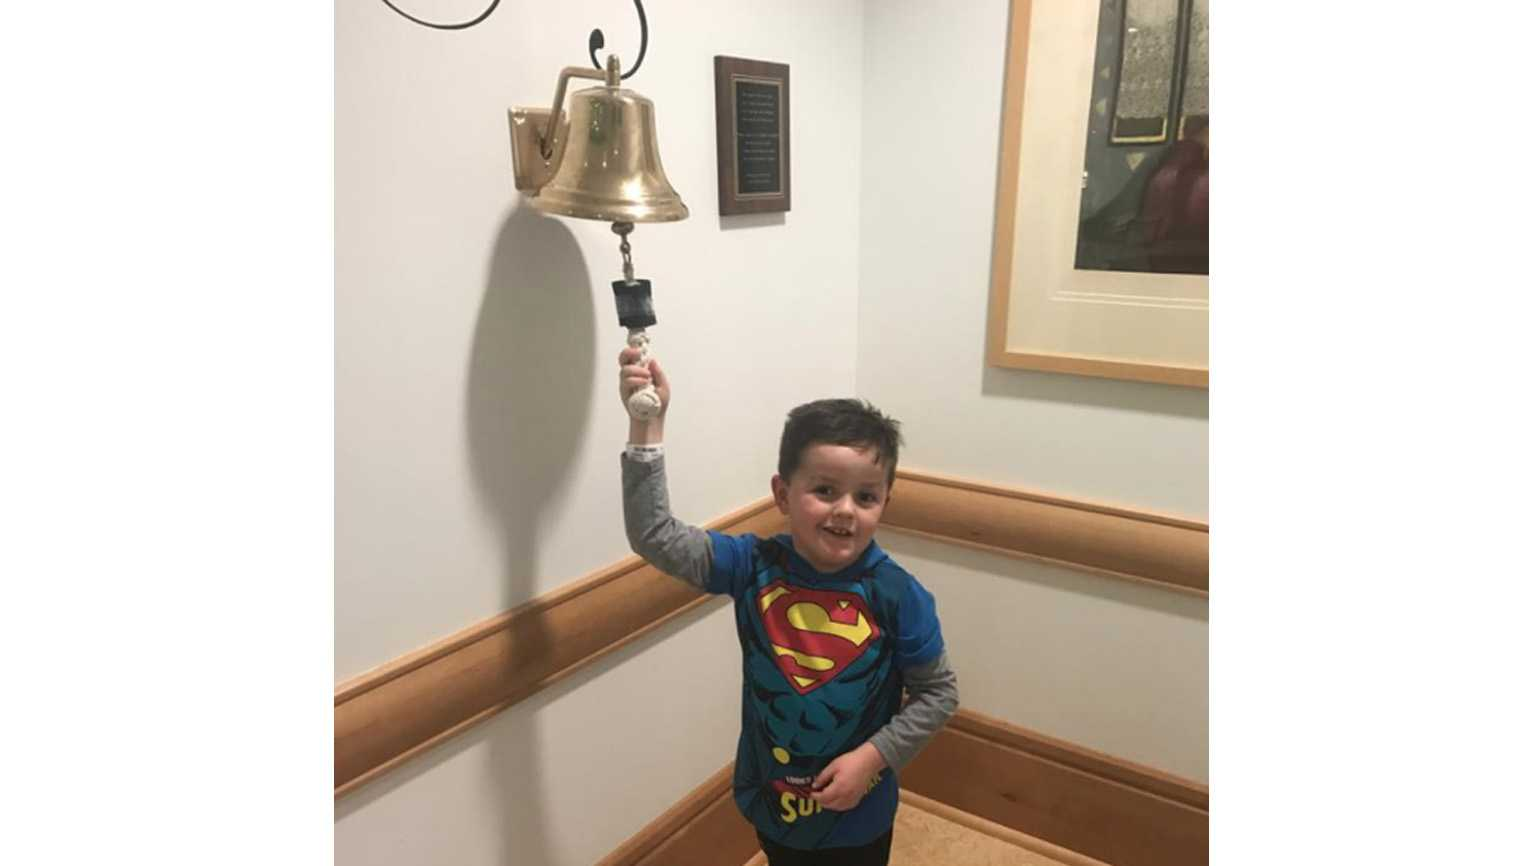 Jimmy Spagnolo, 6, rings a bell to signify the end of his cancer treatments at the Children's Hospital of Pittsburgh.